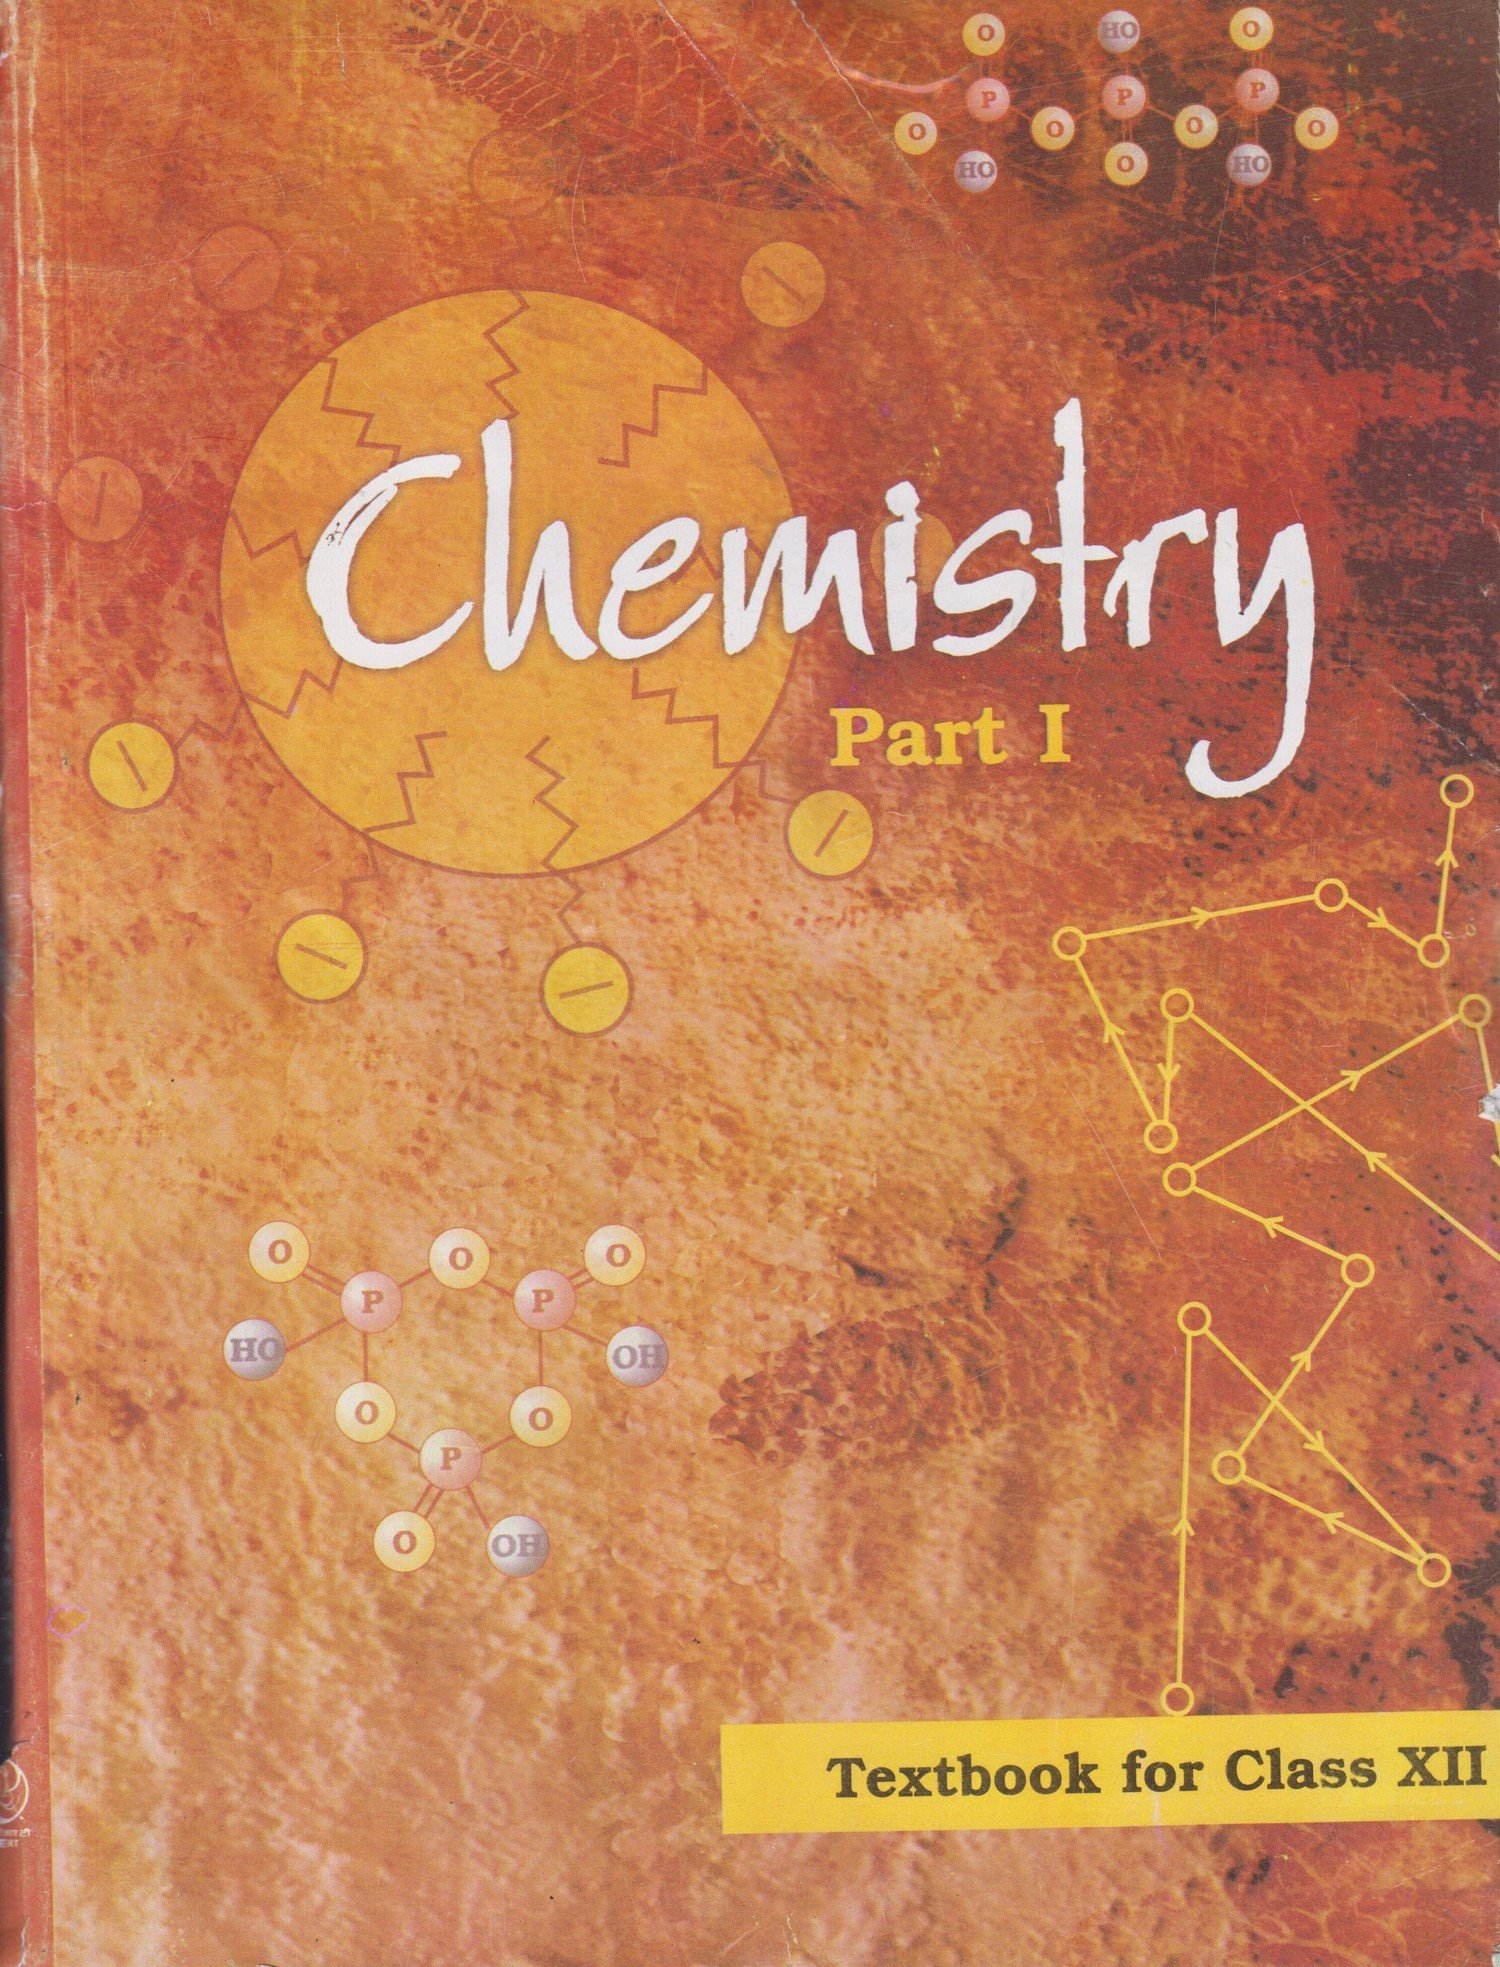 CLASS 12 CHEMISTRY PART 1 NCERT FREE PDF DOWNLOAD